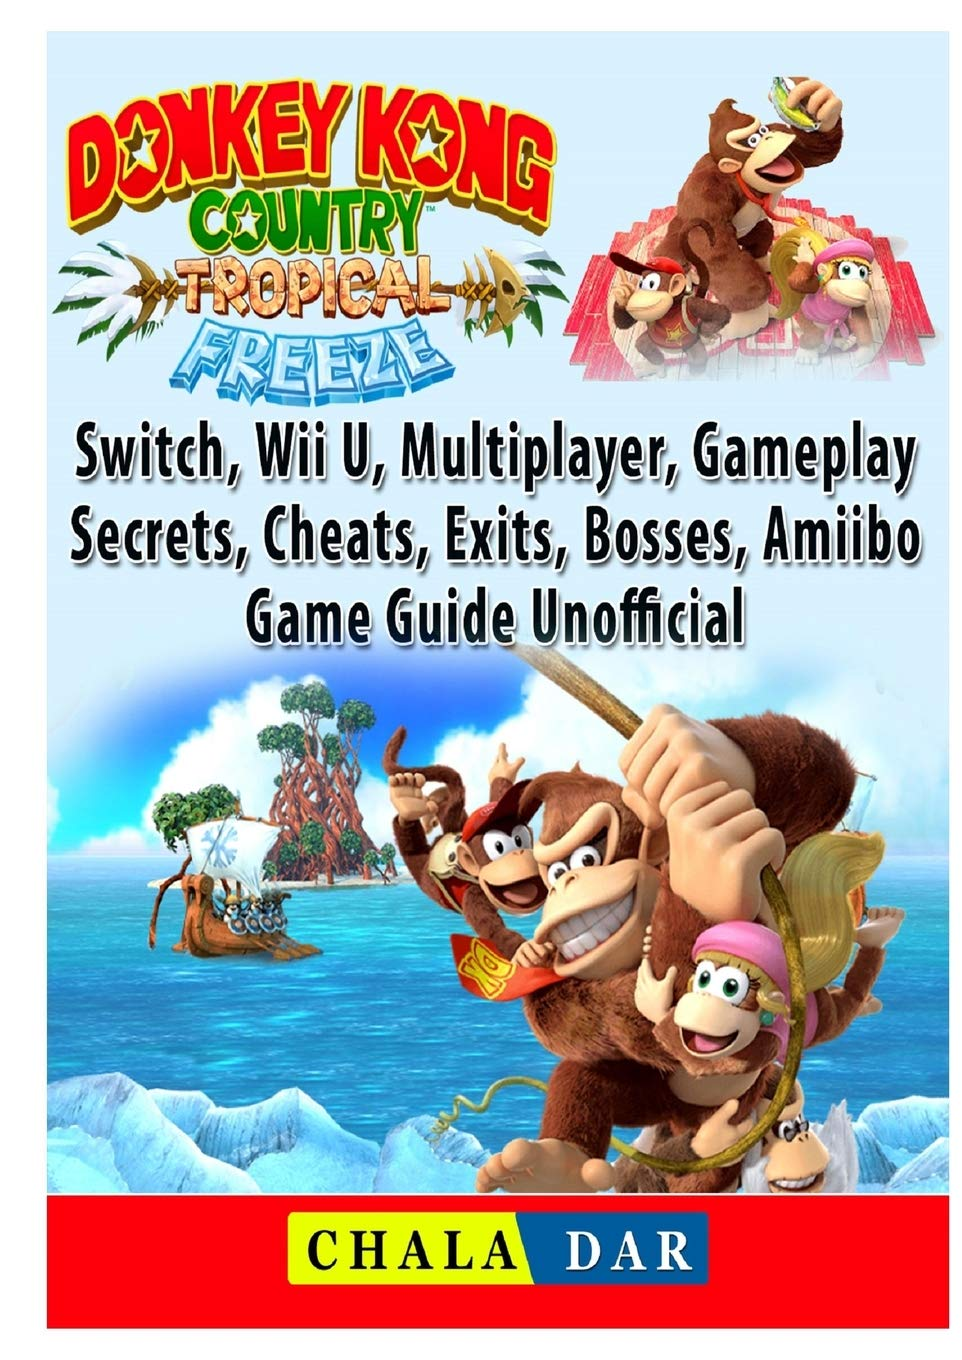 Donkey Kong Country Tropical Freeze, Switch, Wii U, Multiplayer ...